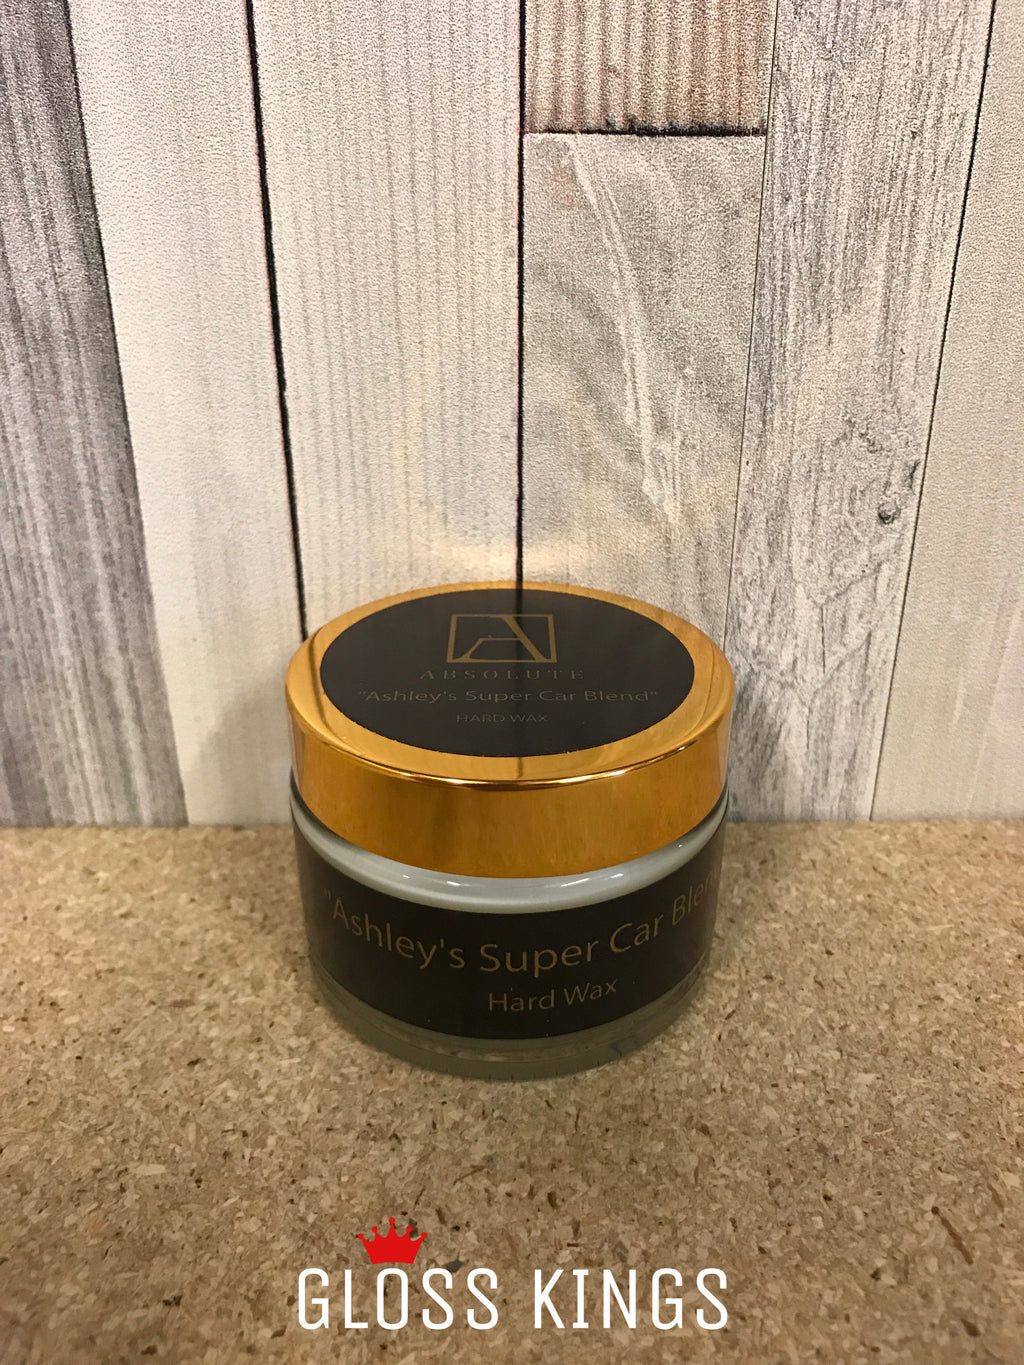 Absolute Wax - Ashley's Super Car Blend - GlossKings